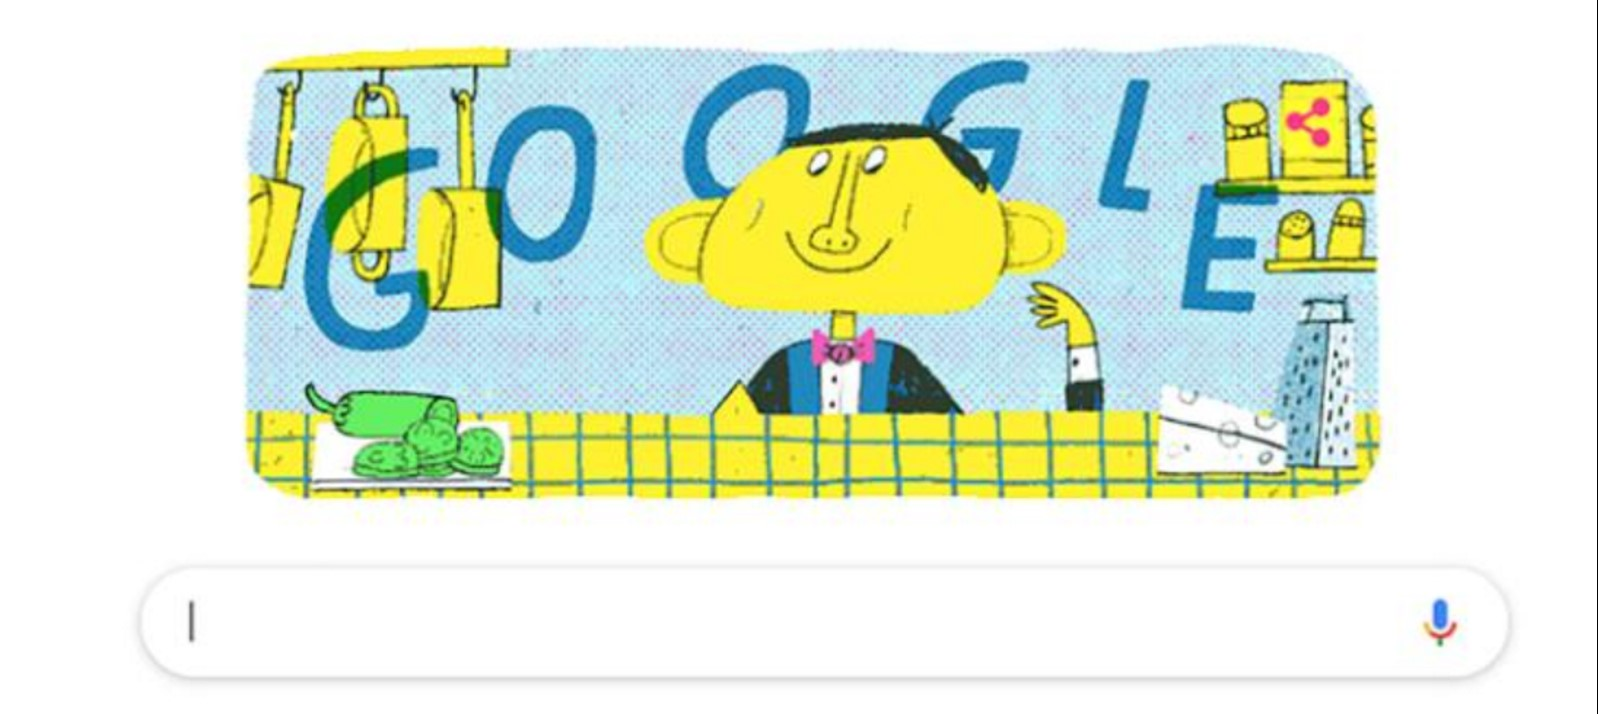 Q5. Who does this Google Doodle commemorate?